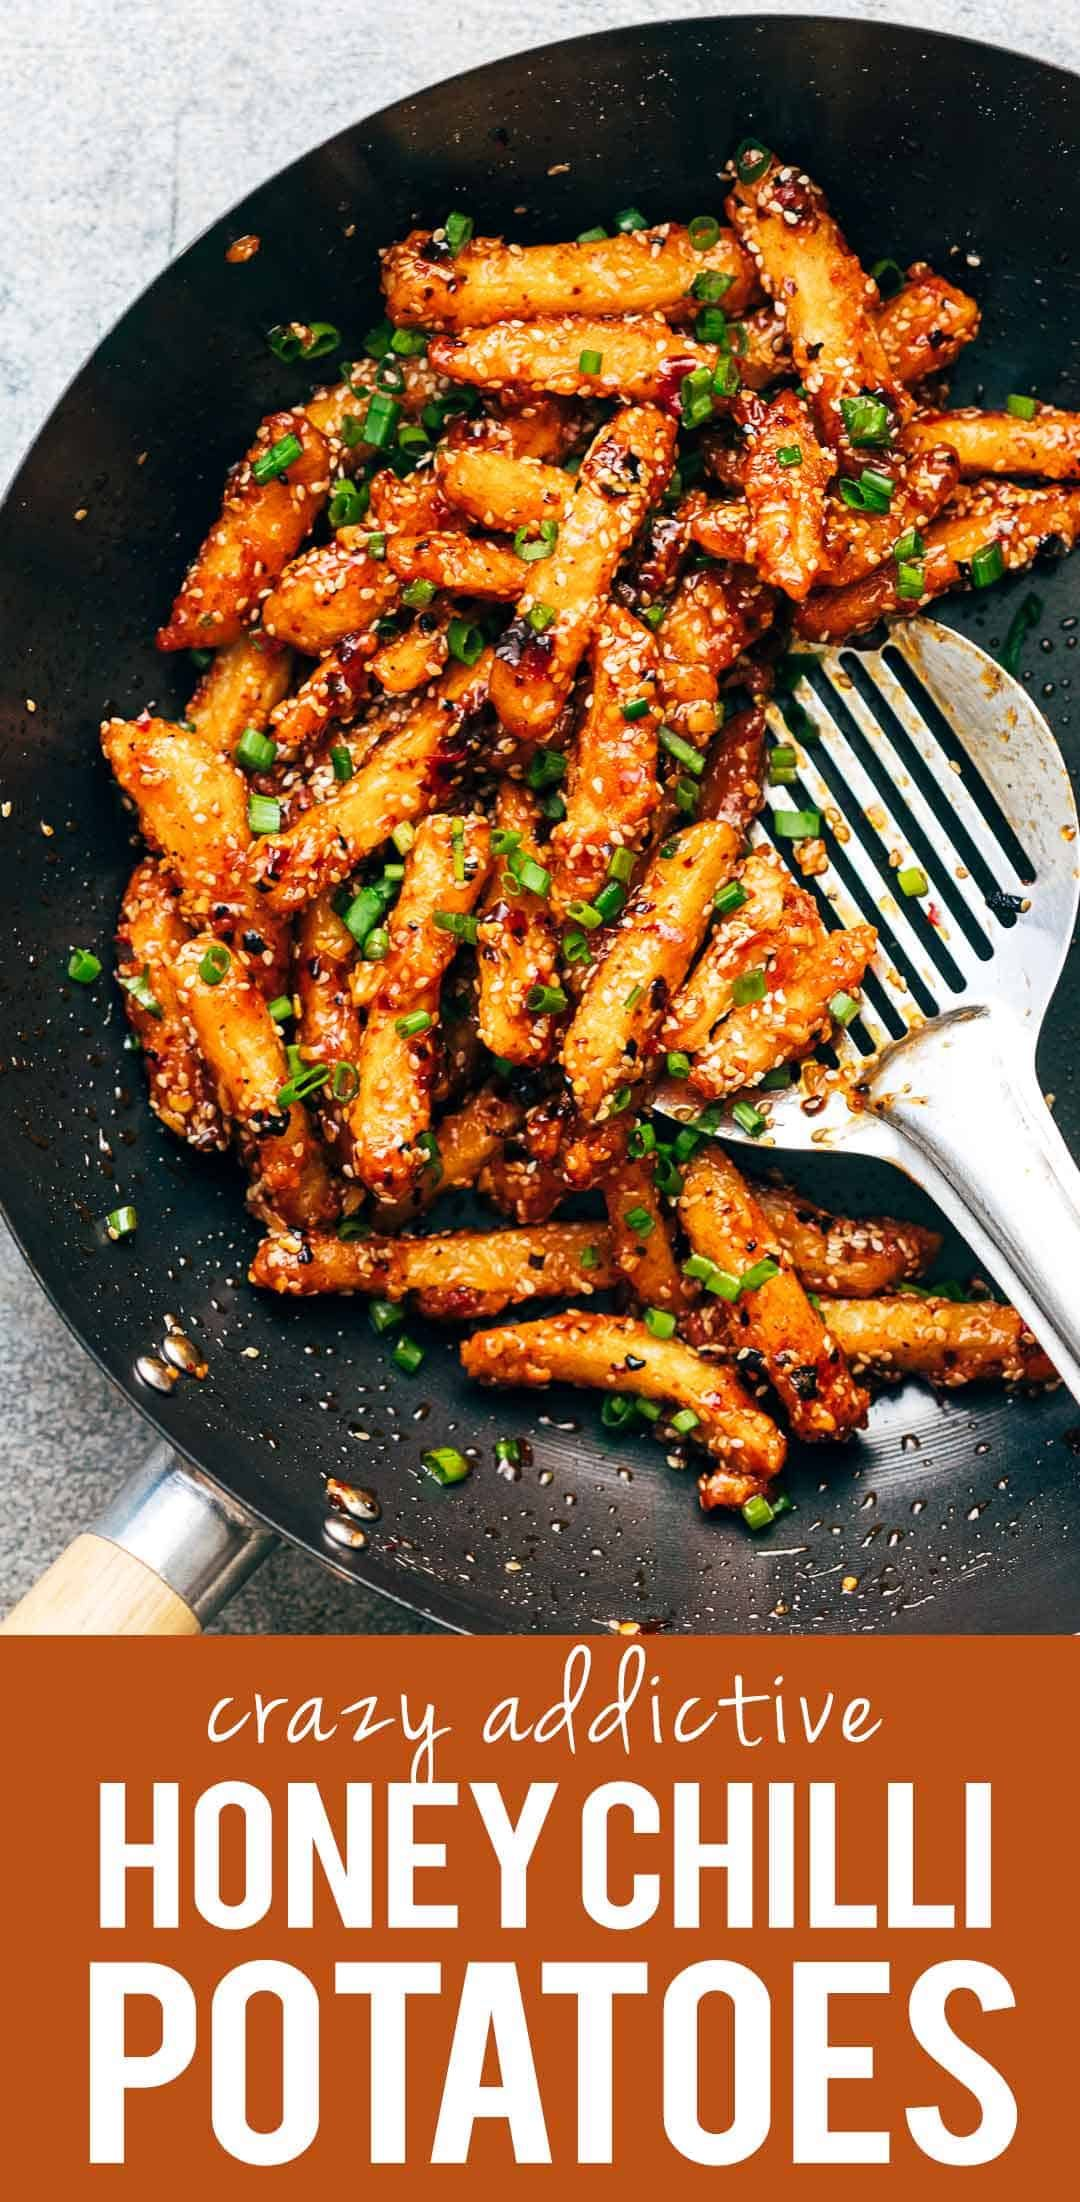 Crispy Honey Chilli Potatoes - so easy to make at home!